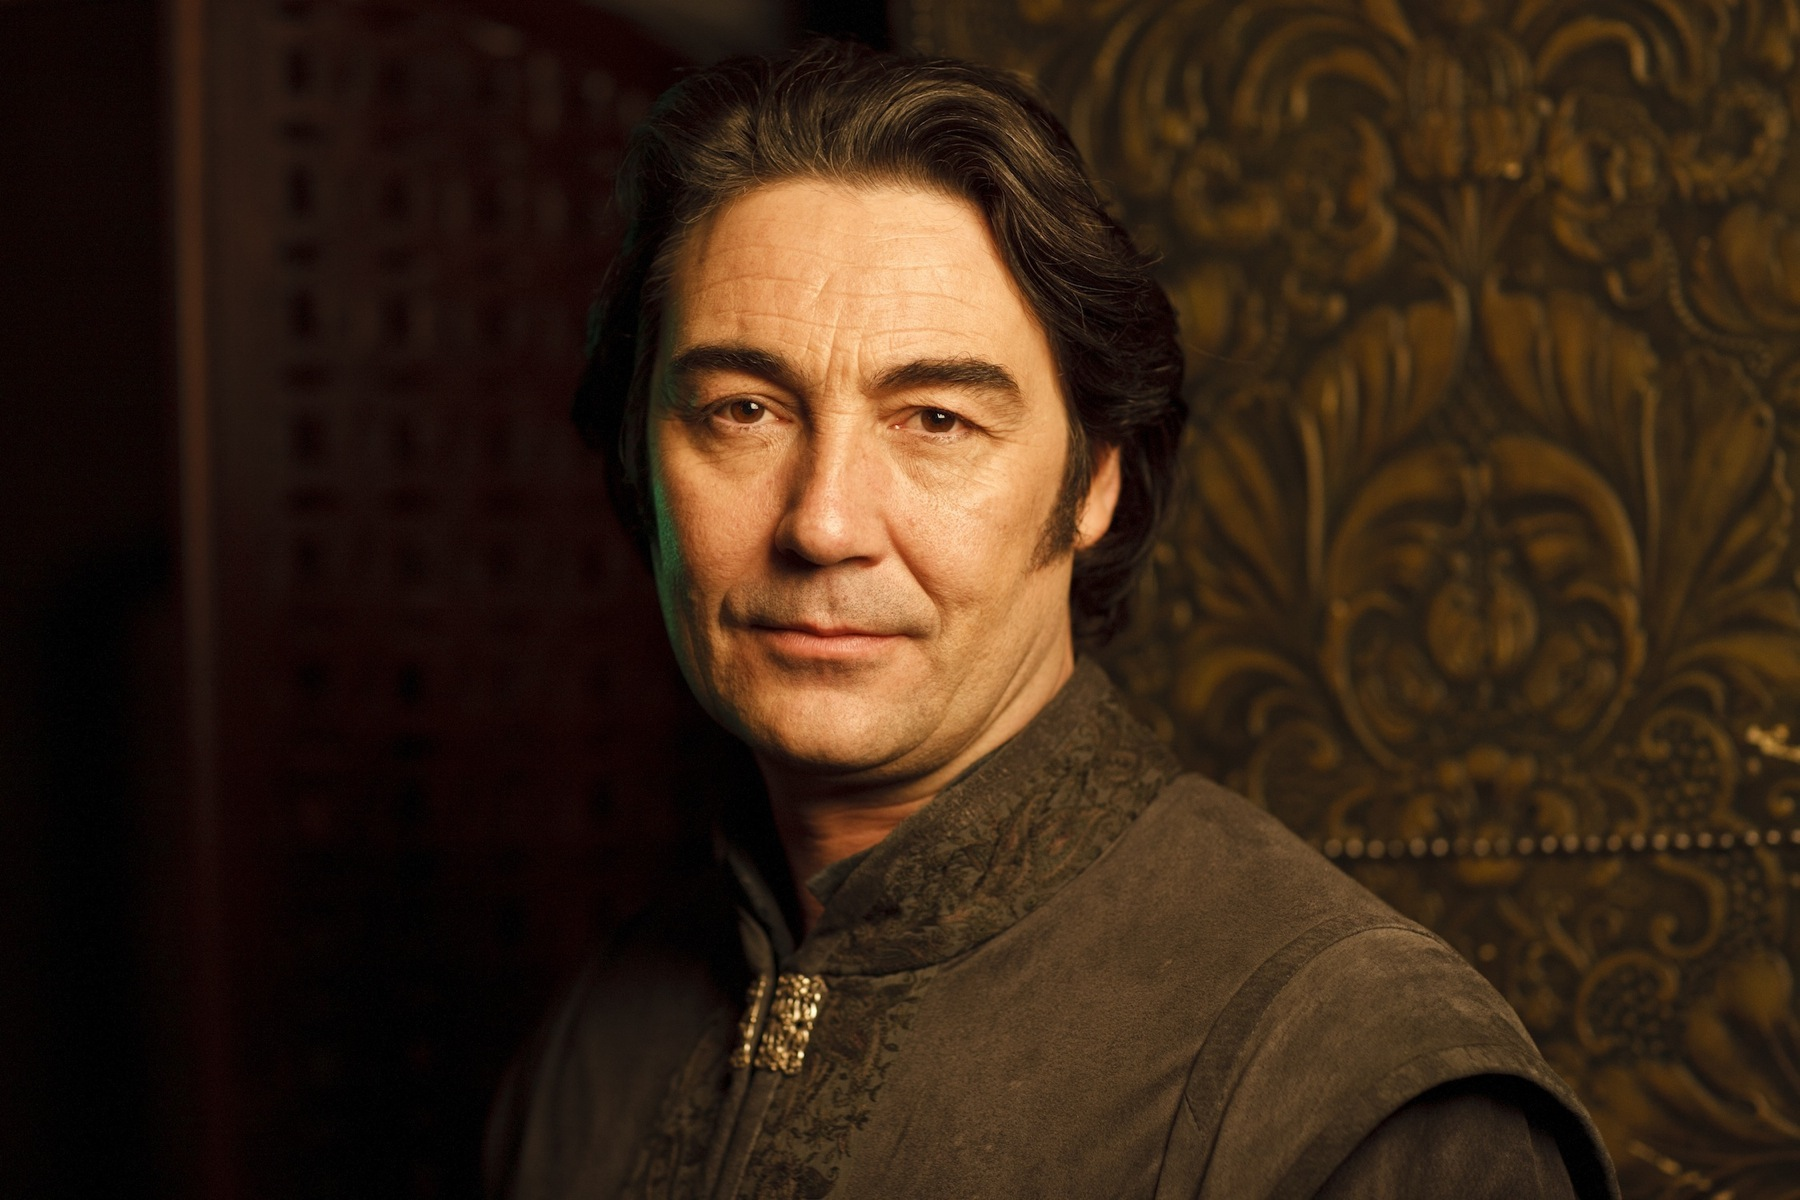 nathaniel parker net worth